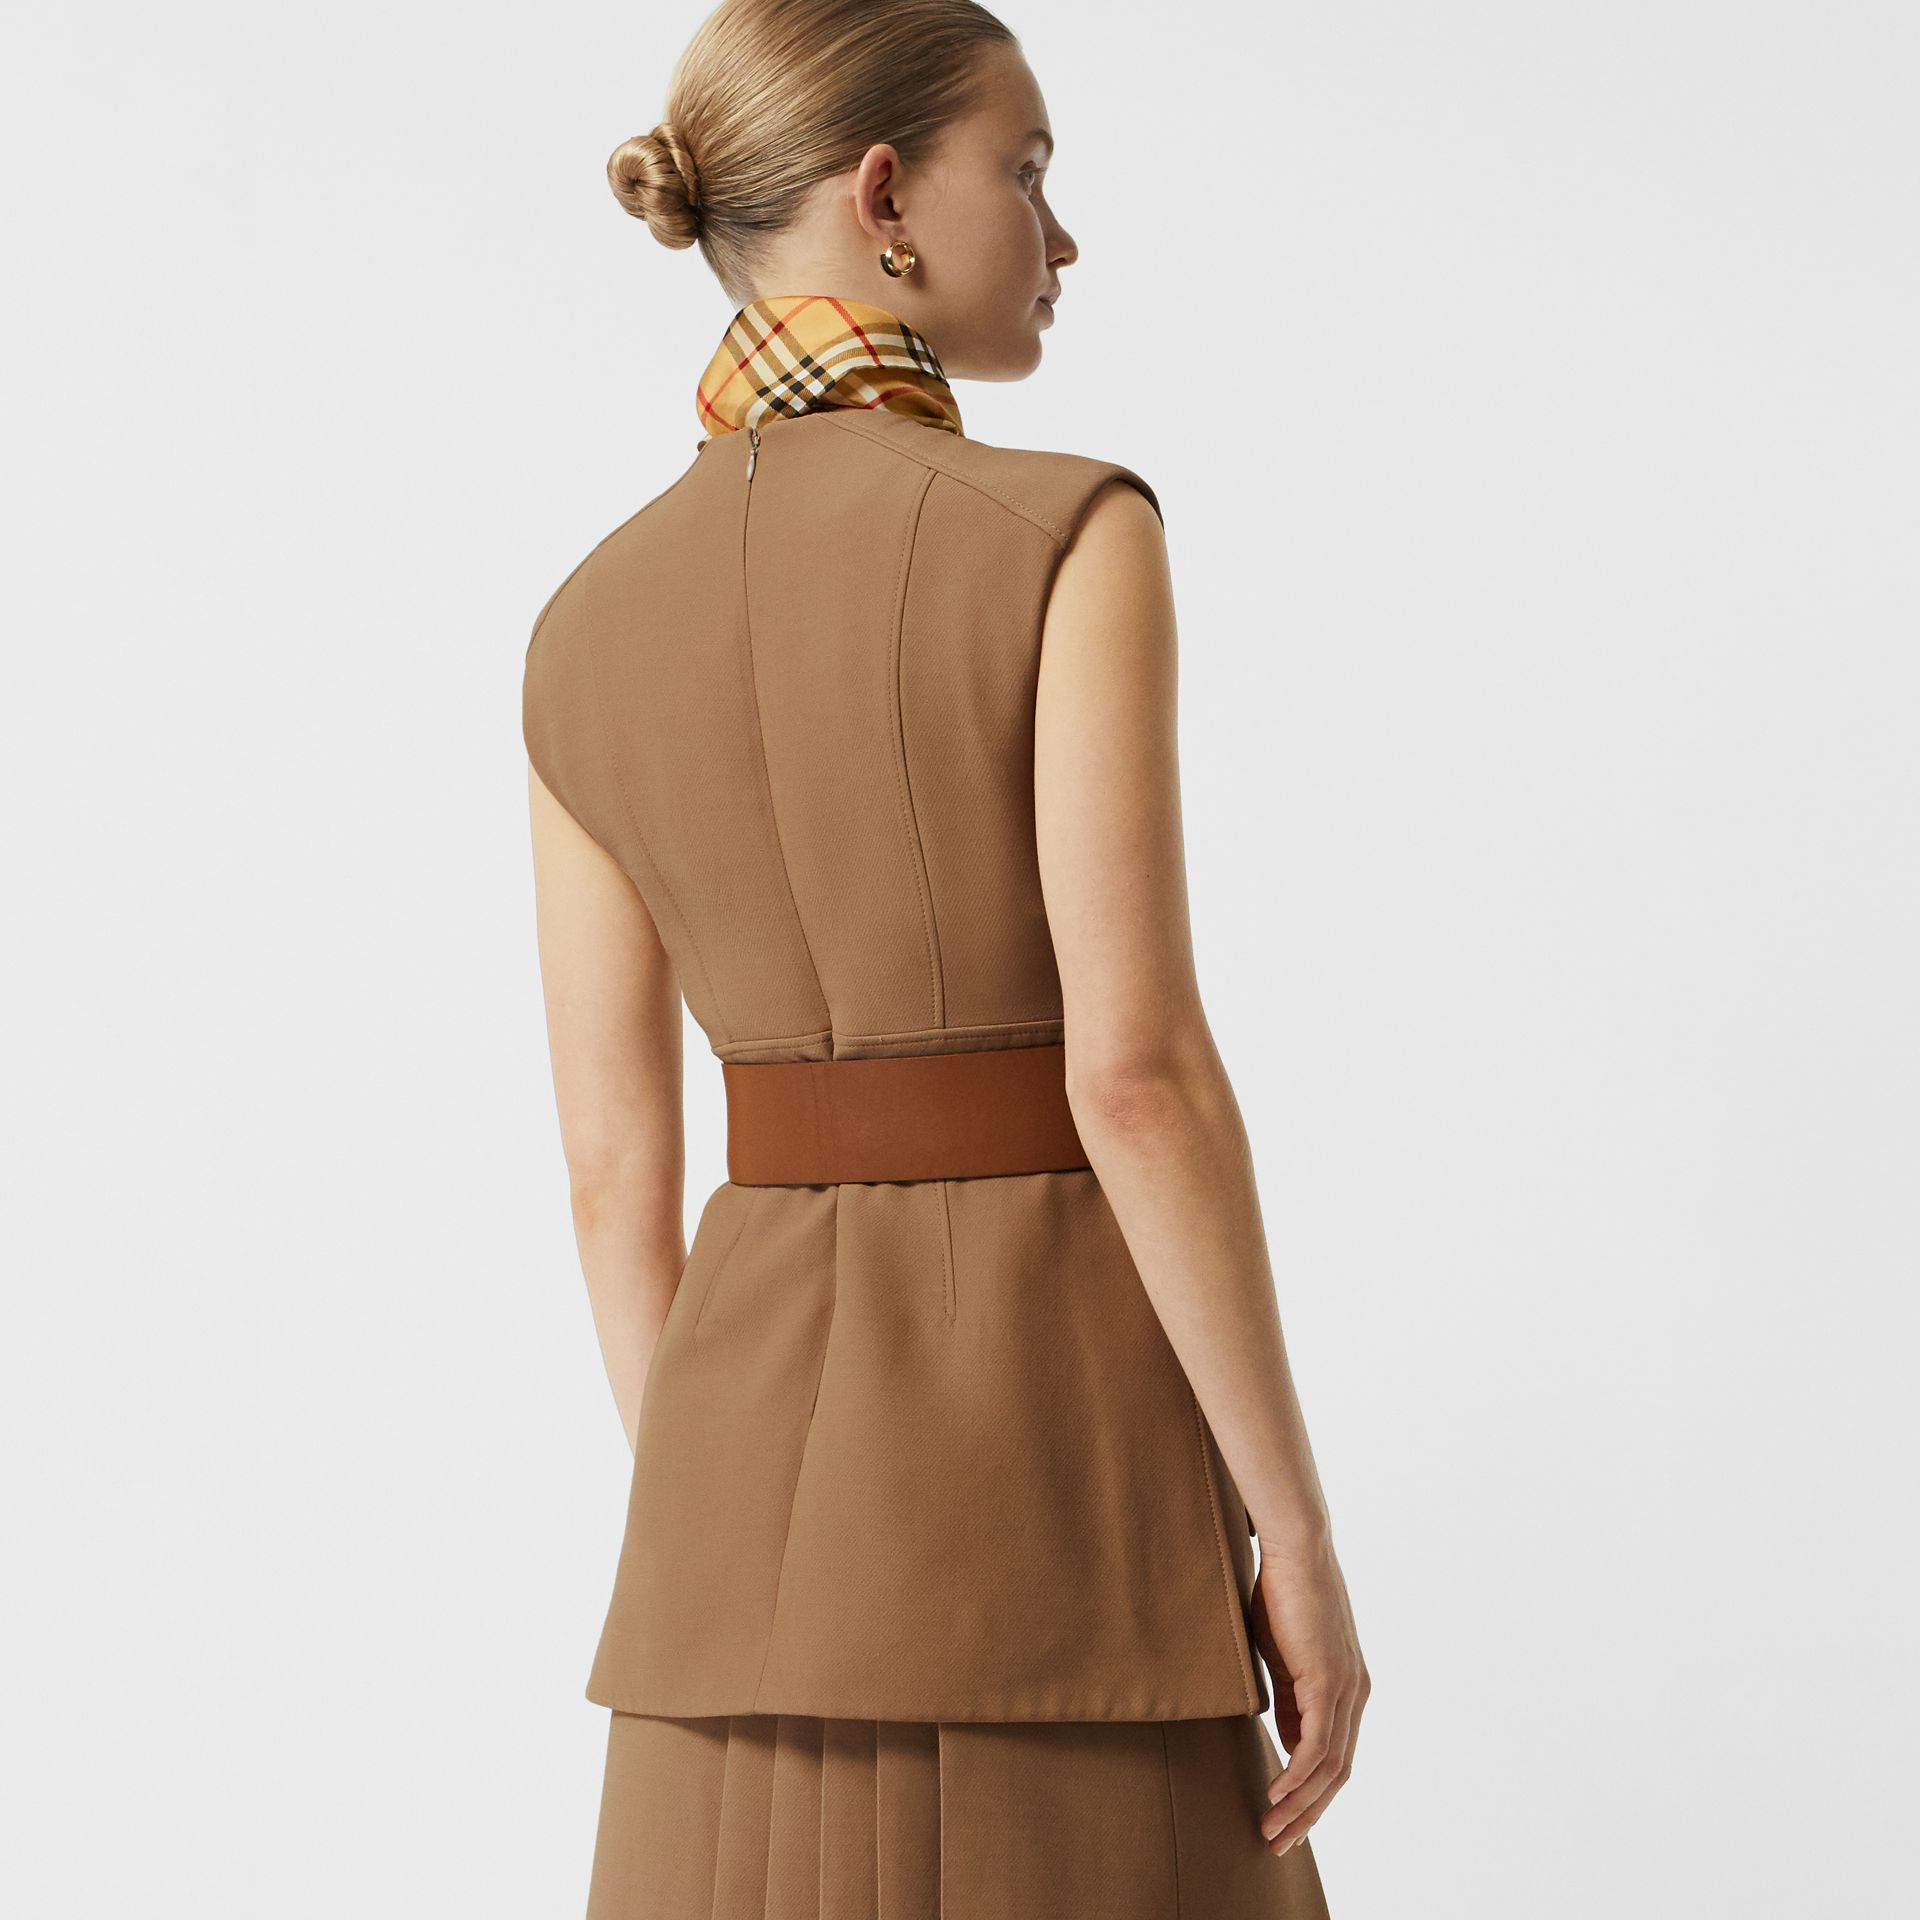 Keyhole Detail Sleeveless Wool Silk Top in Camel - Women | Burberry Canada - gallery image 2